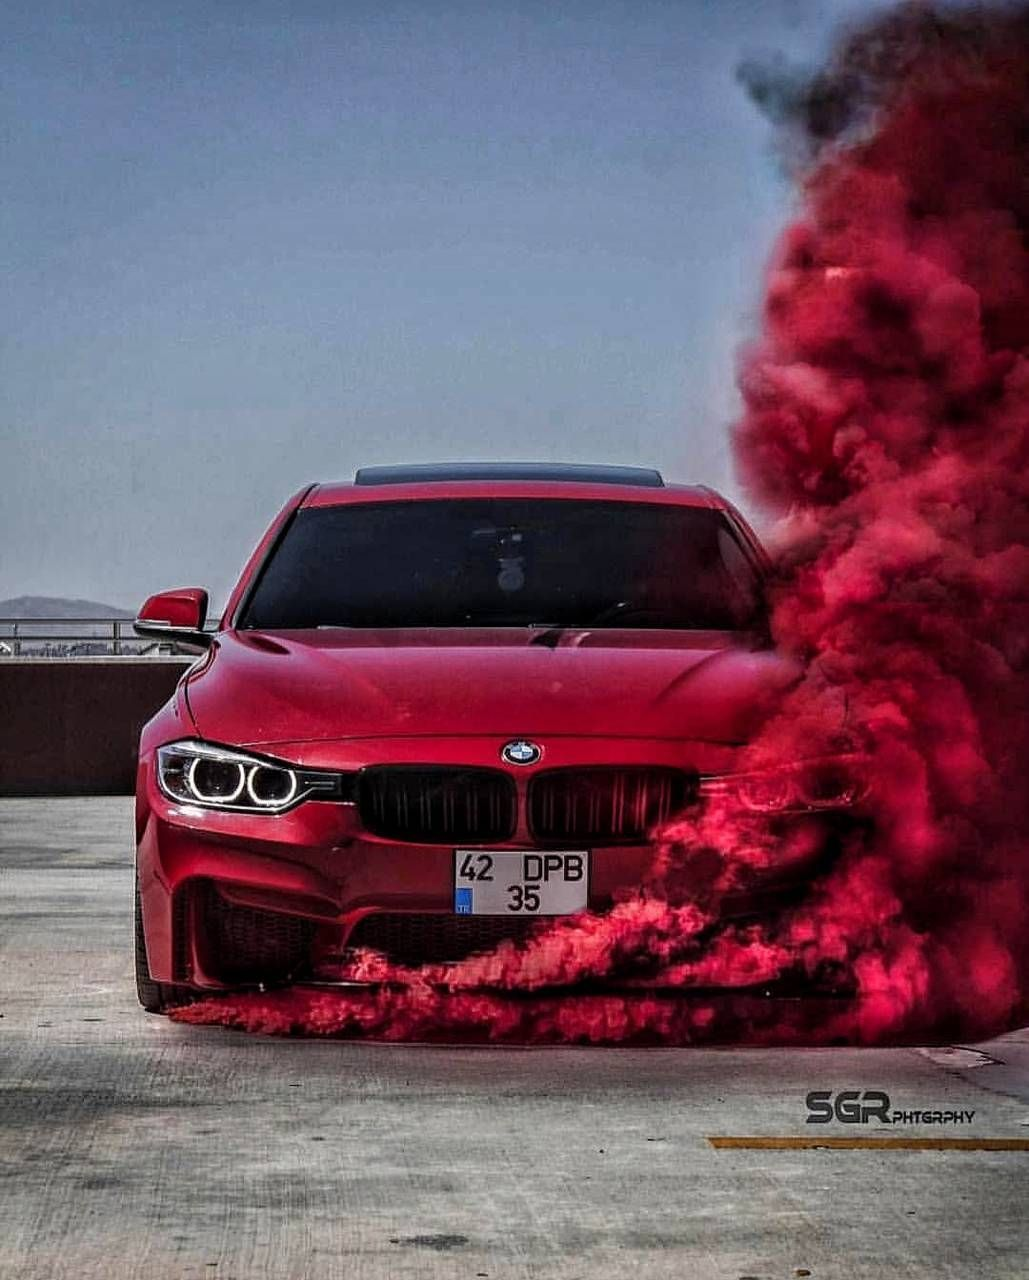 Download Bmw Wallpaper By Semiherbay43 89 Free On Zedge Now Browse Browse Download Bmw Wallpapers Bmw Cars Bmw